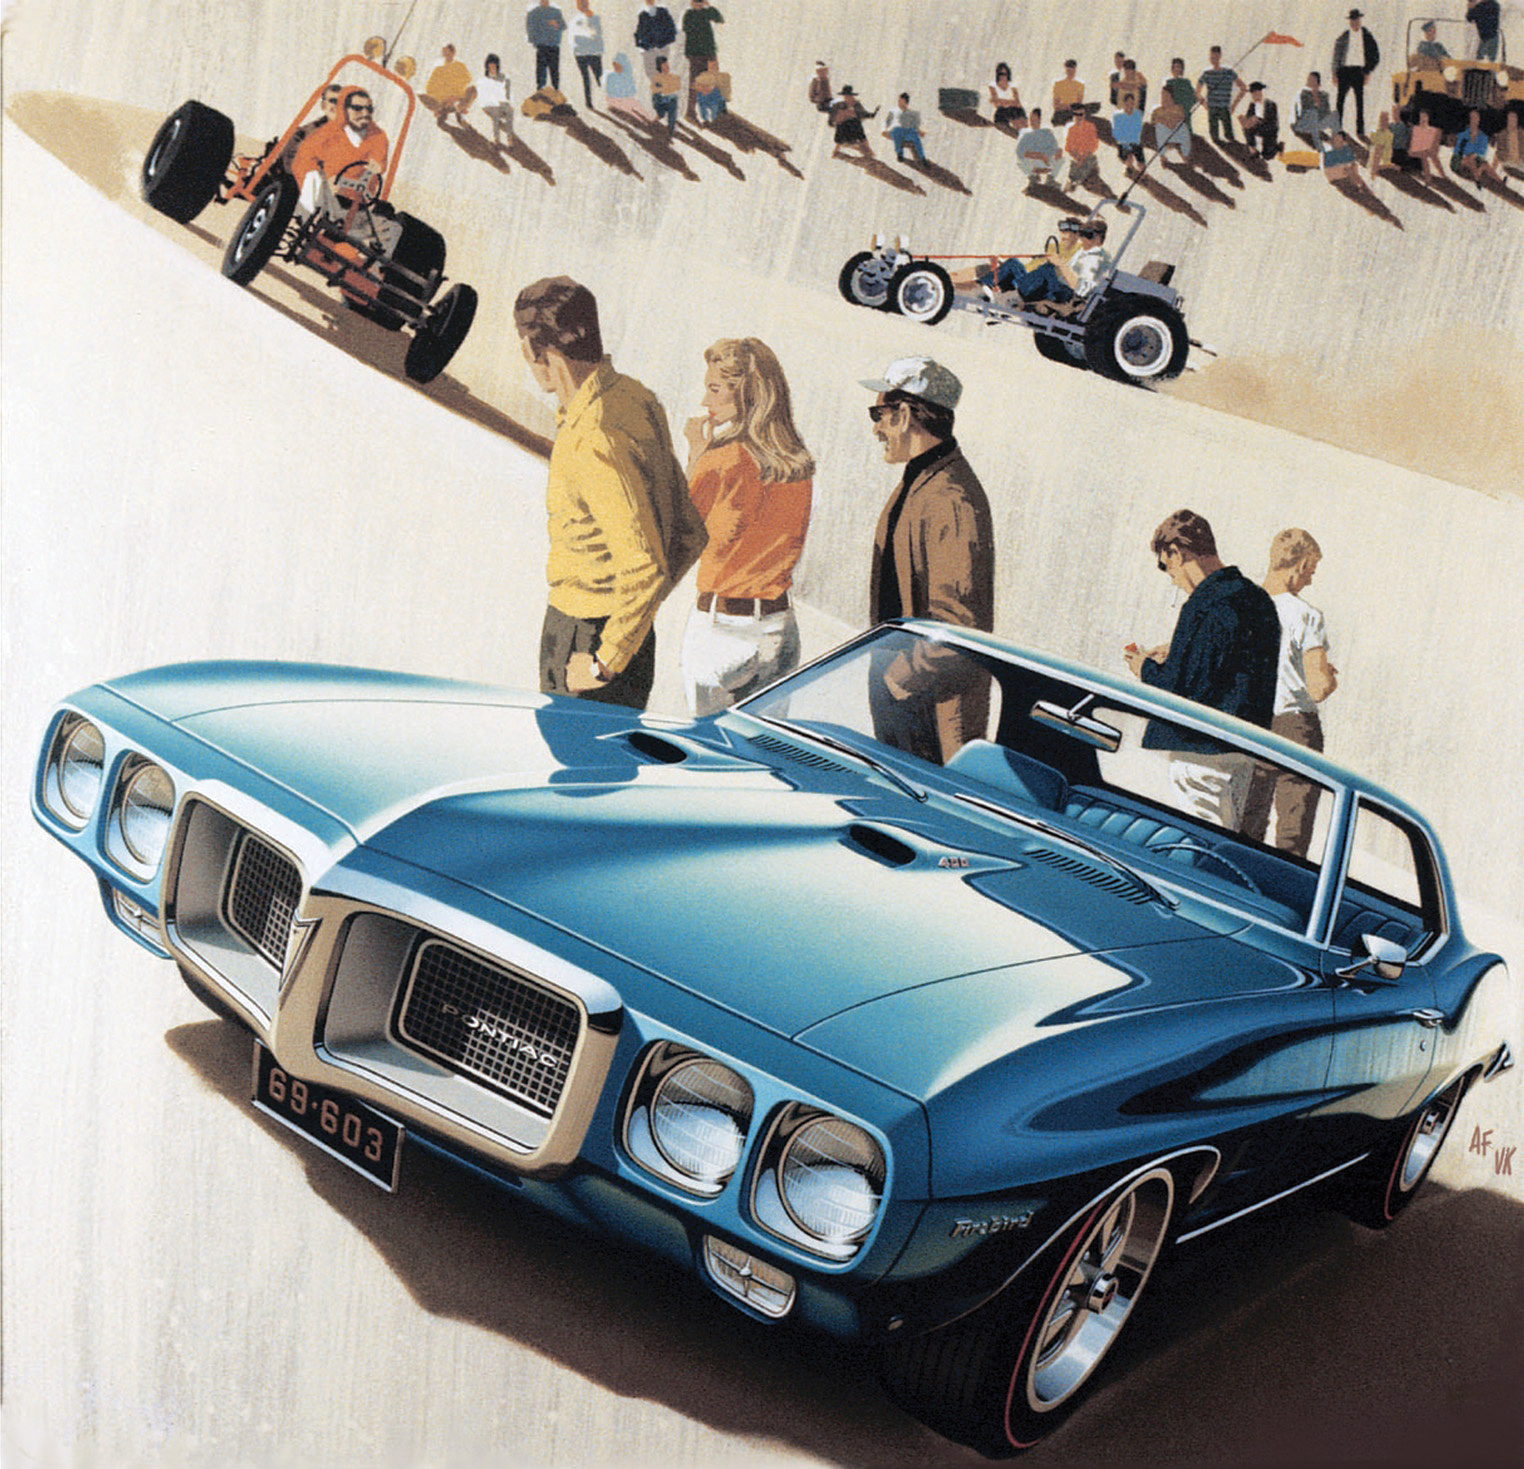 The inspiration for Desert Song (featuring a '69 Firebird) could have easily been a weekend of fun at Pismo Beach, Glamis, or any number of Southern California hot spots.